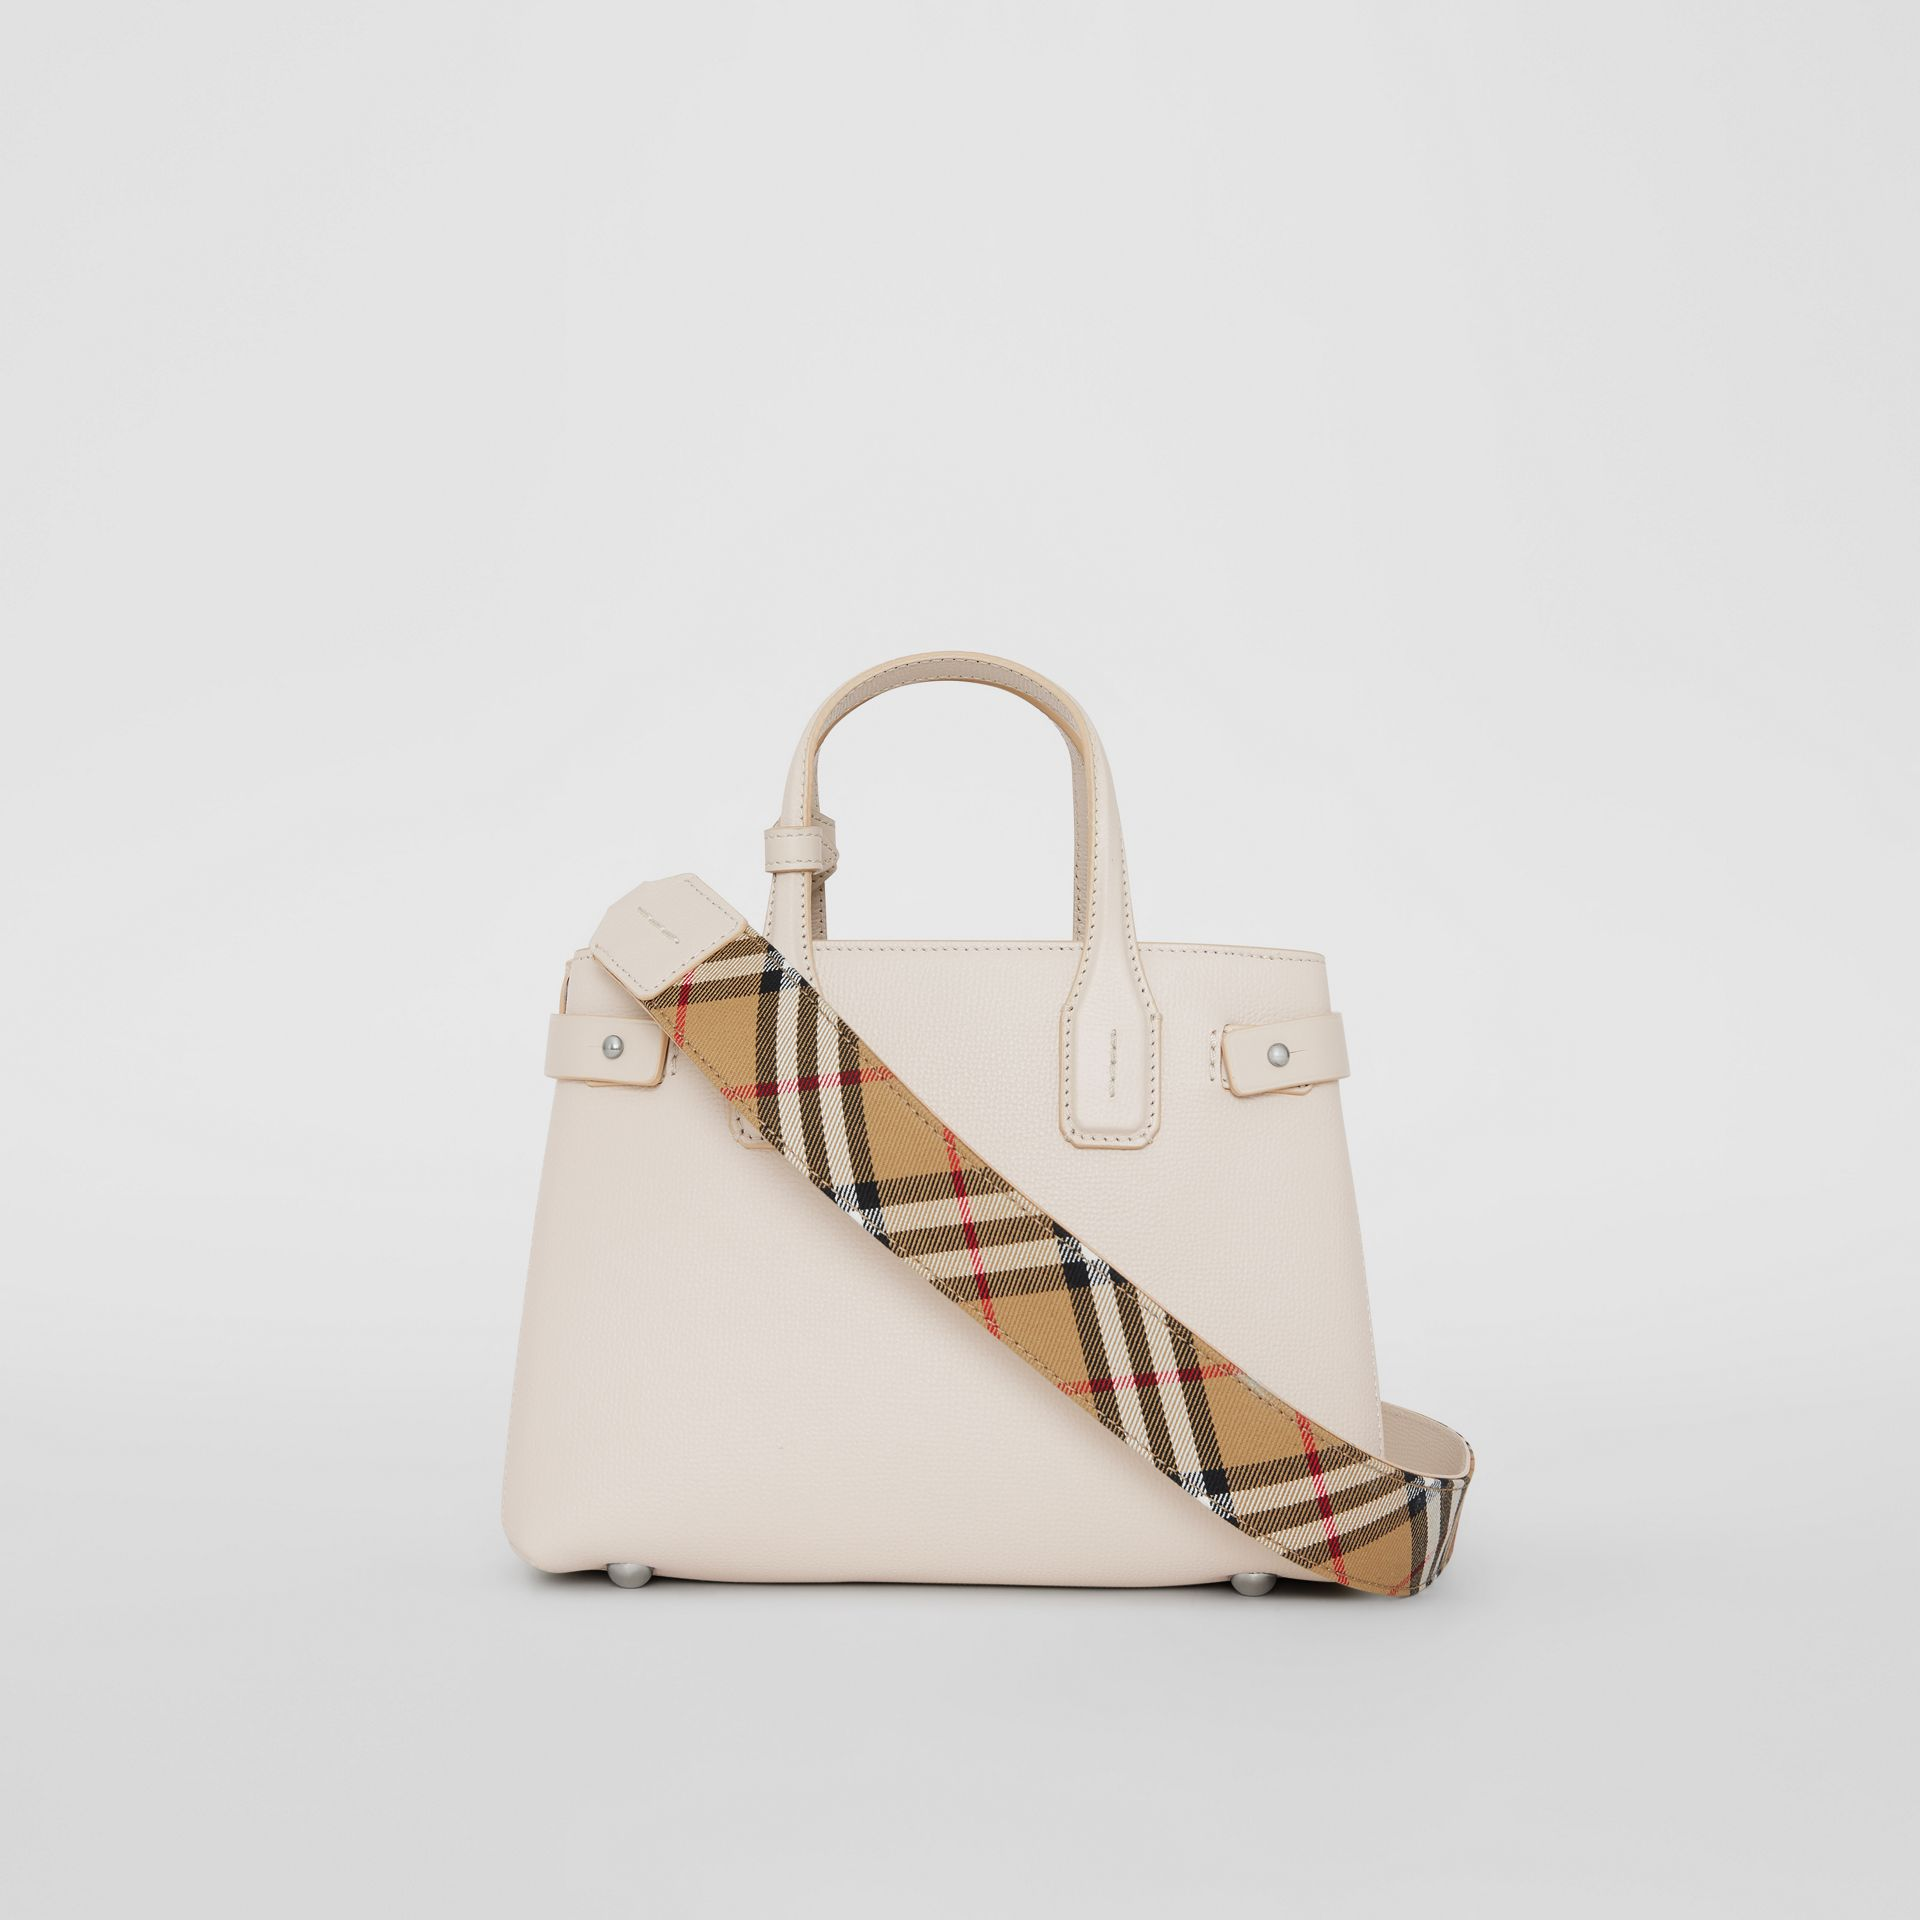 Petit sac The Banner en cuir avec motif Vintage check (Calcaire) - Femme | Burberry - photo de la galerie 4